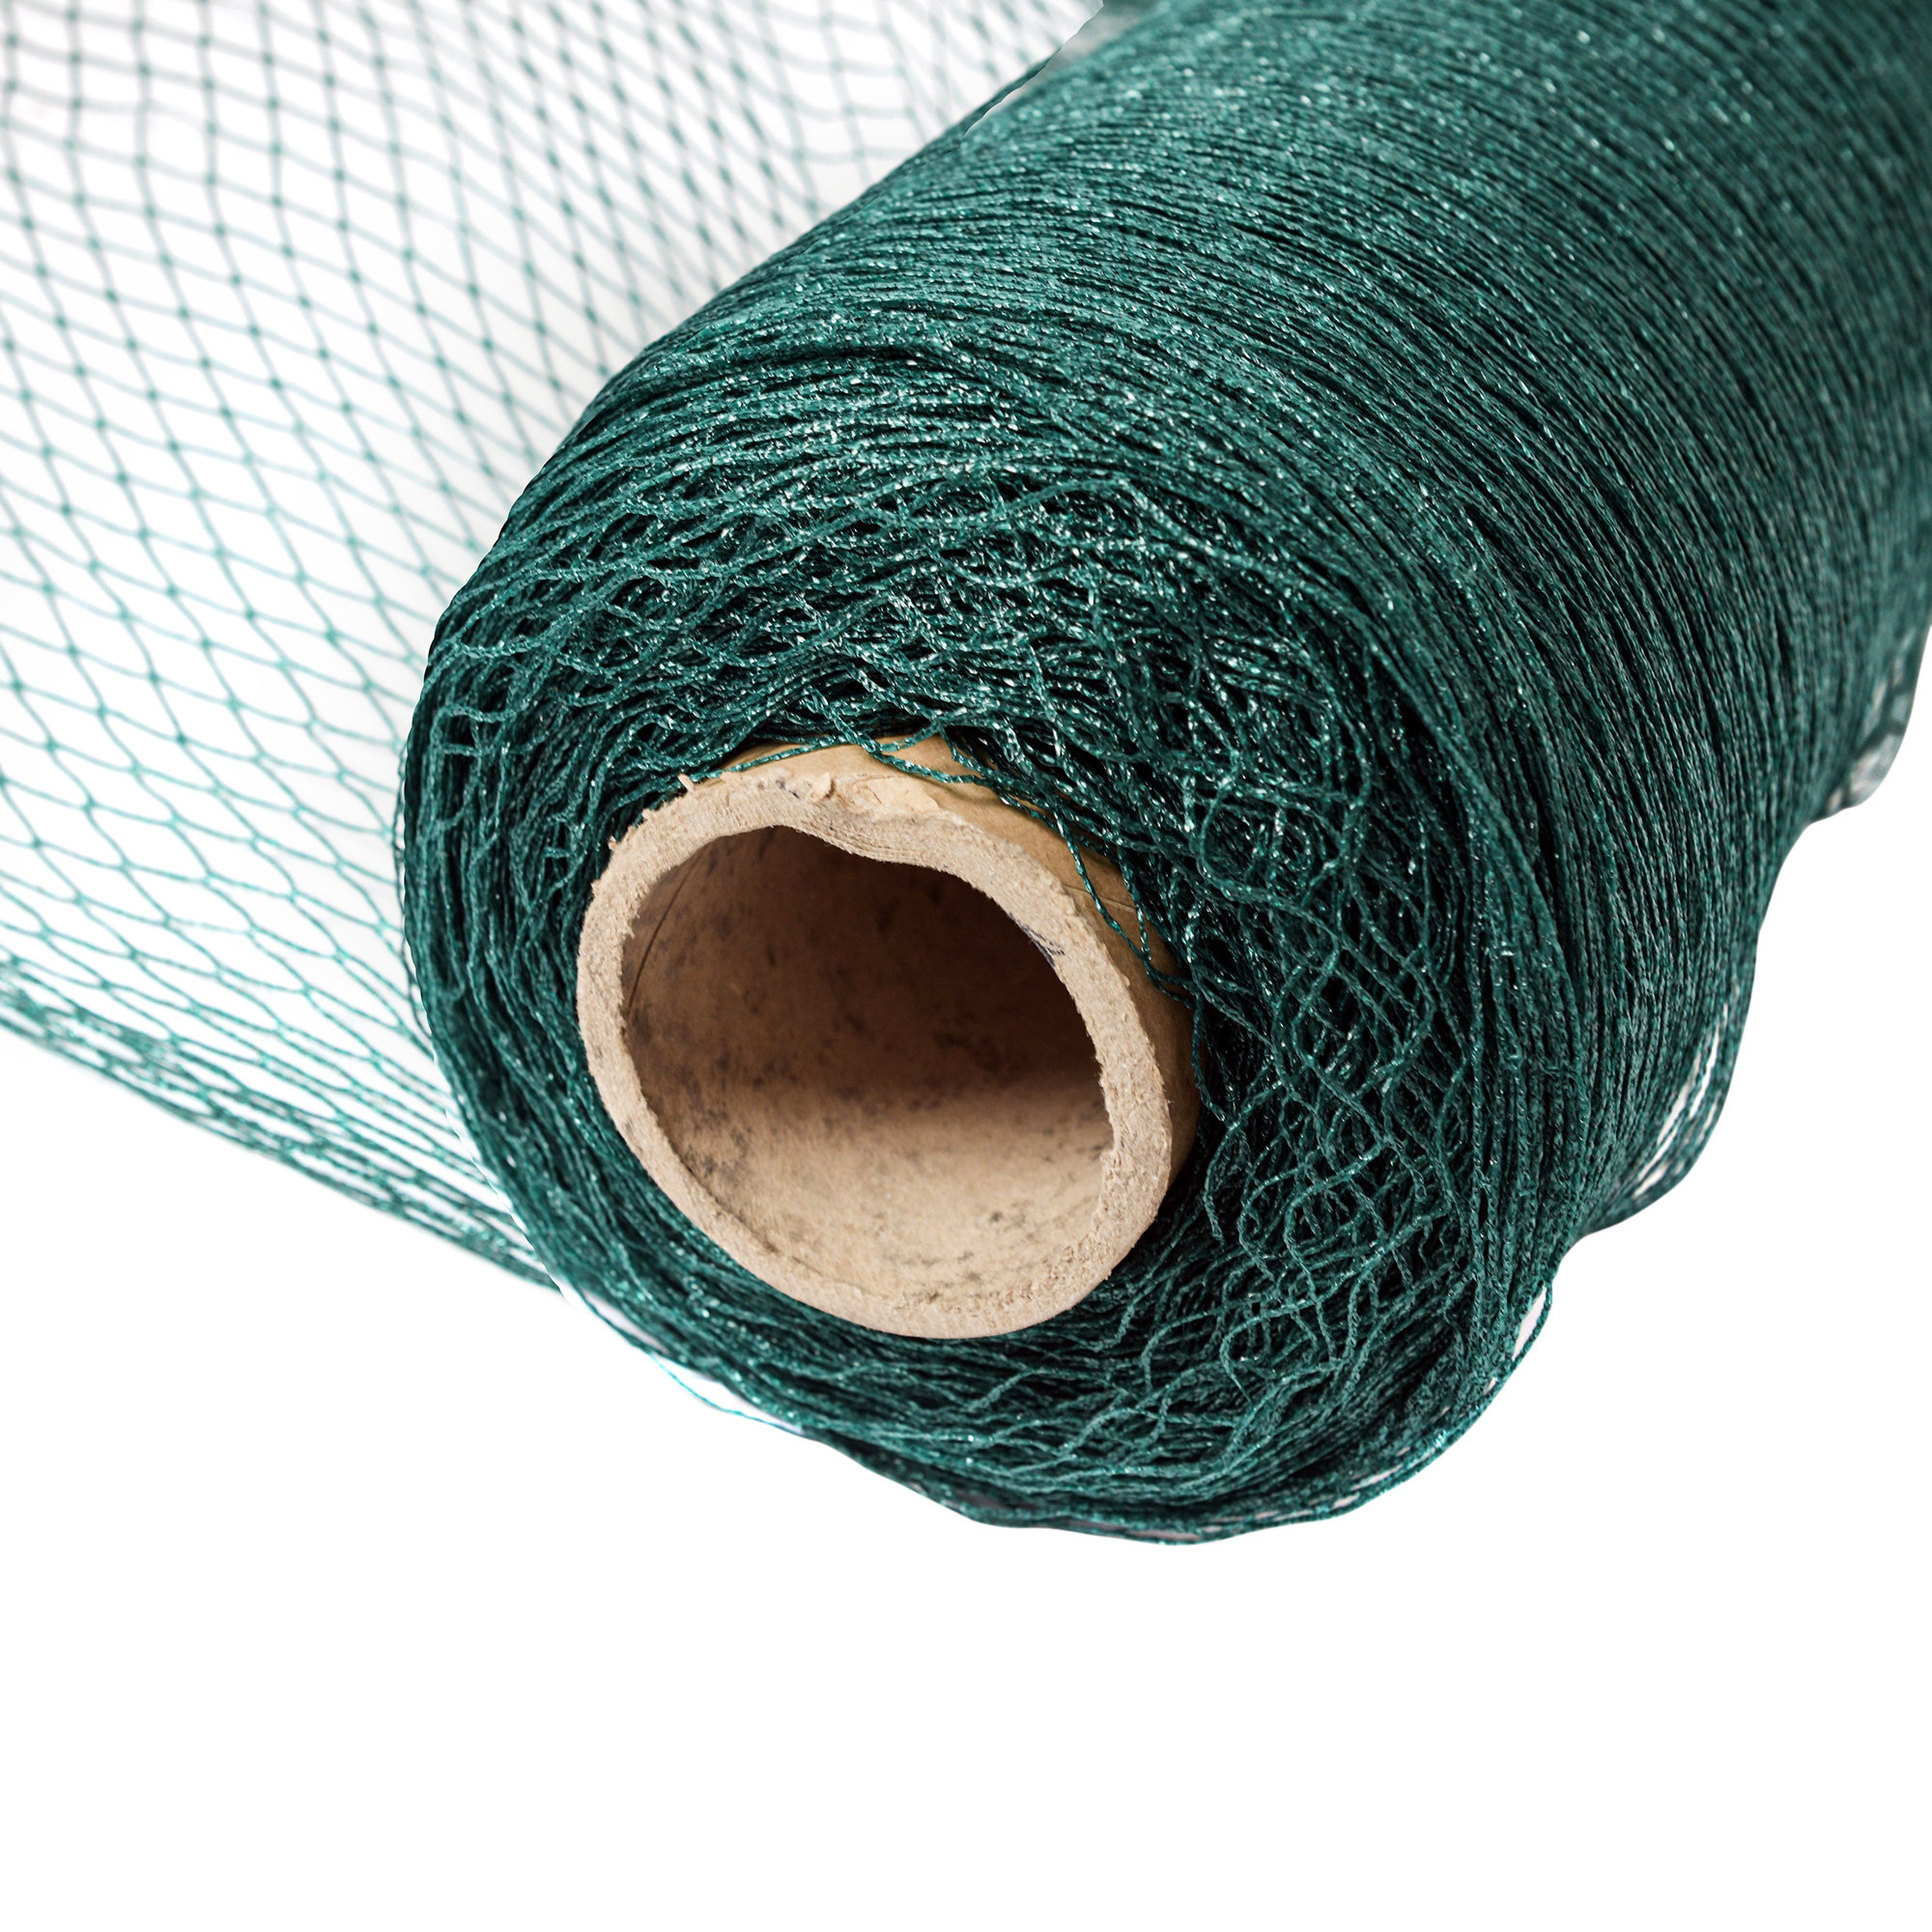 bird-netting-unrolled